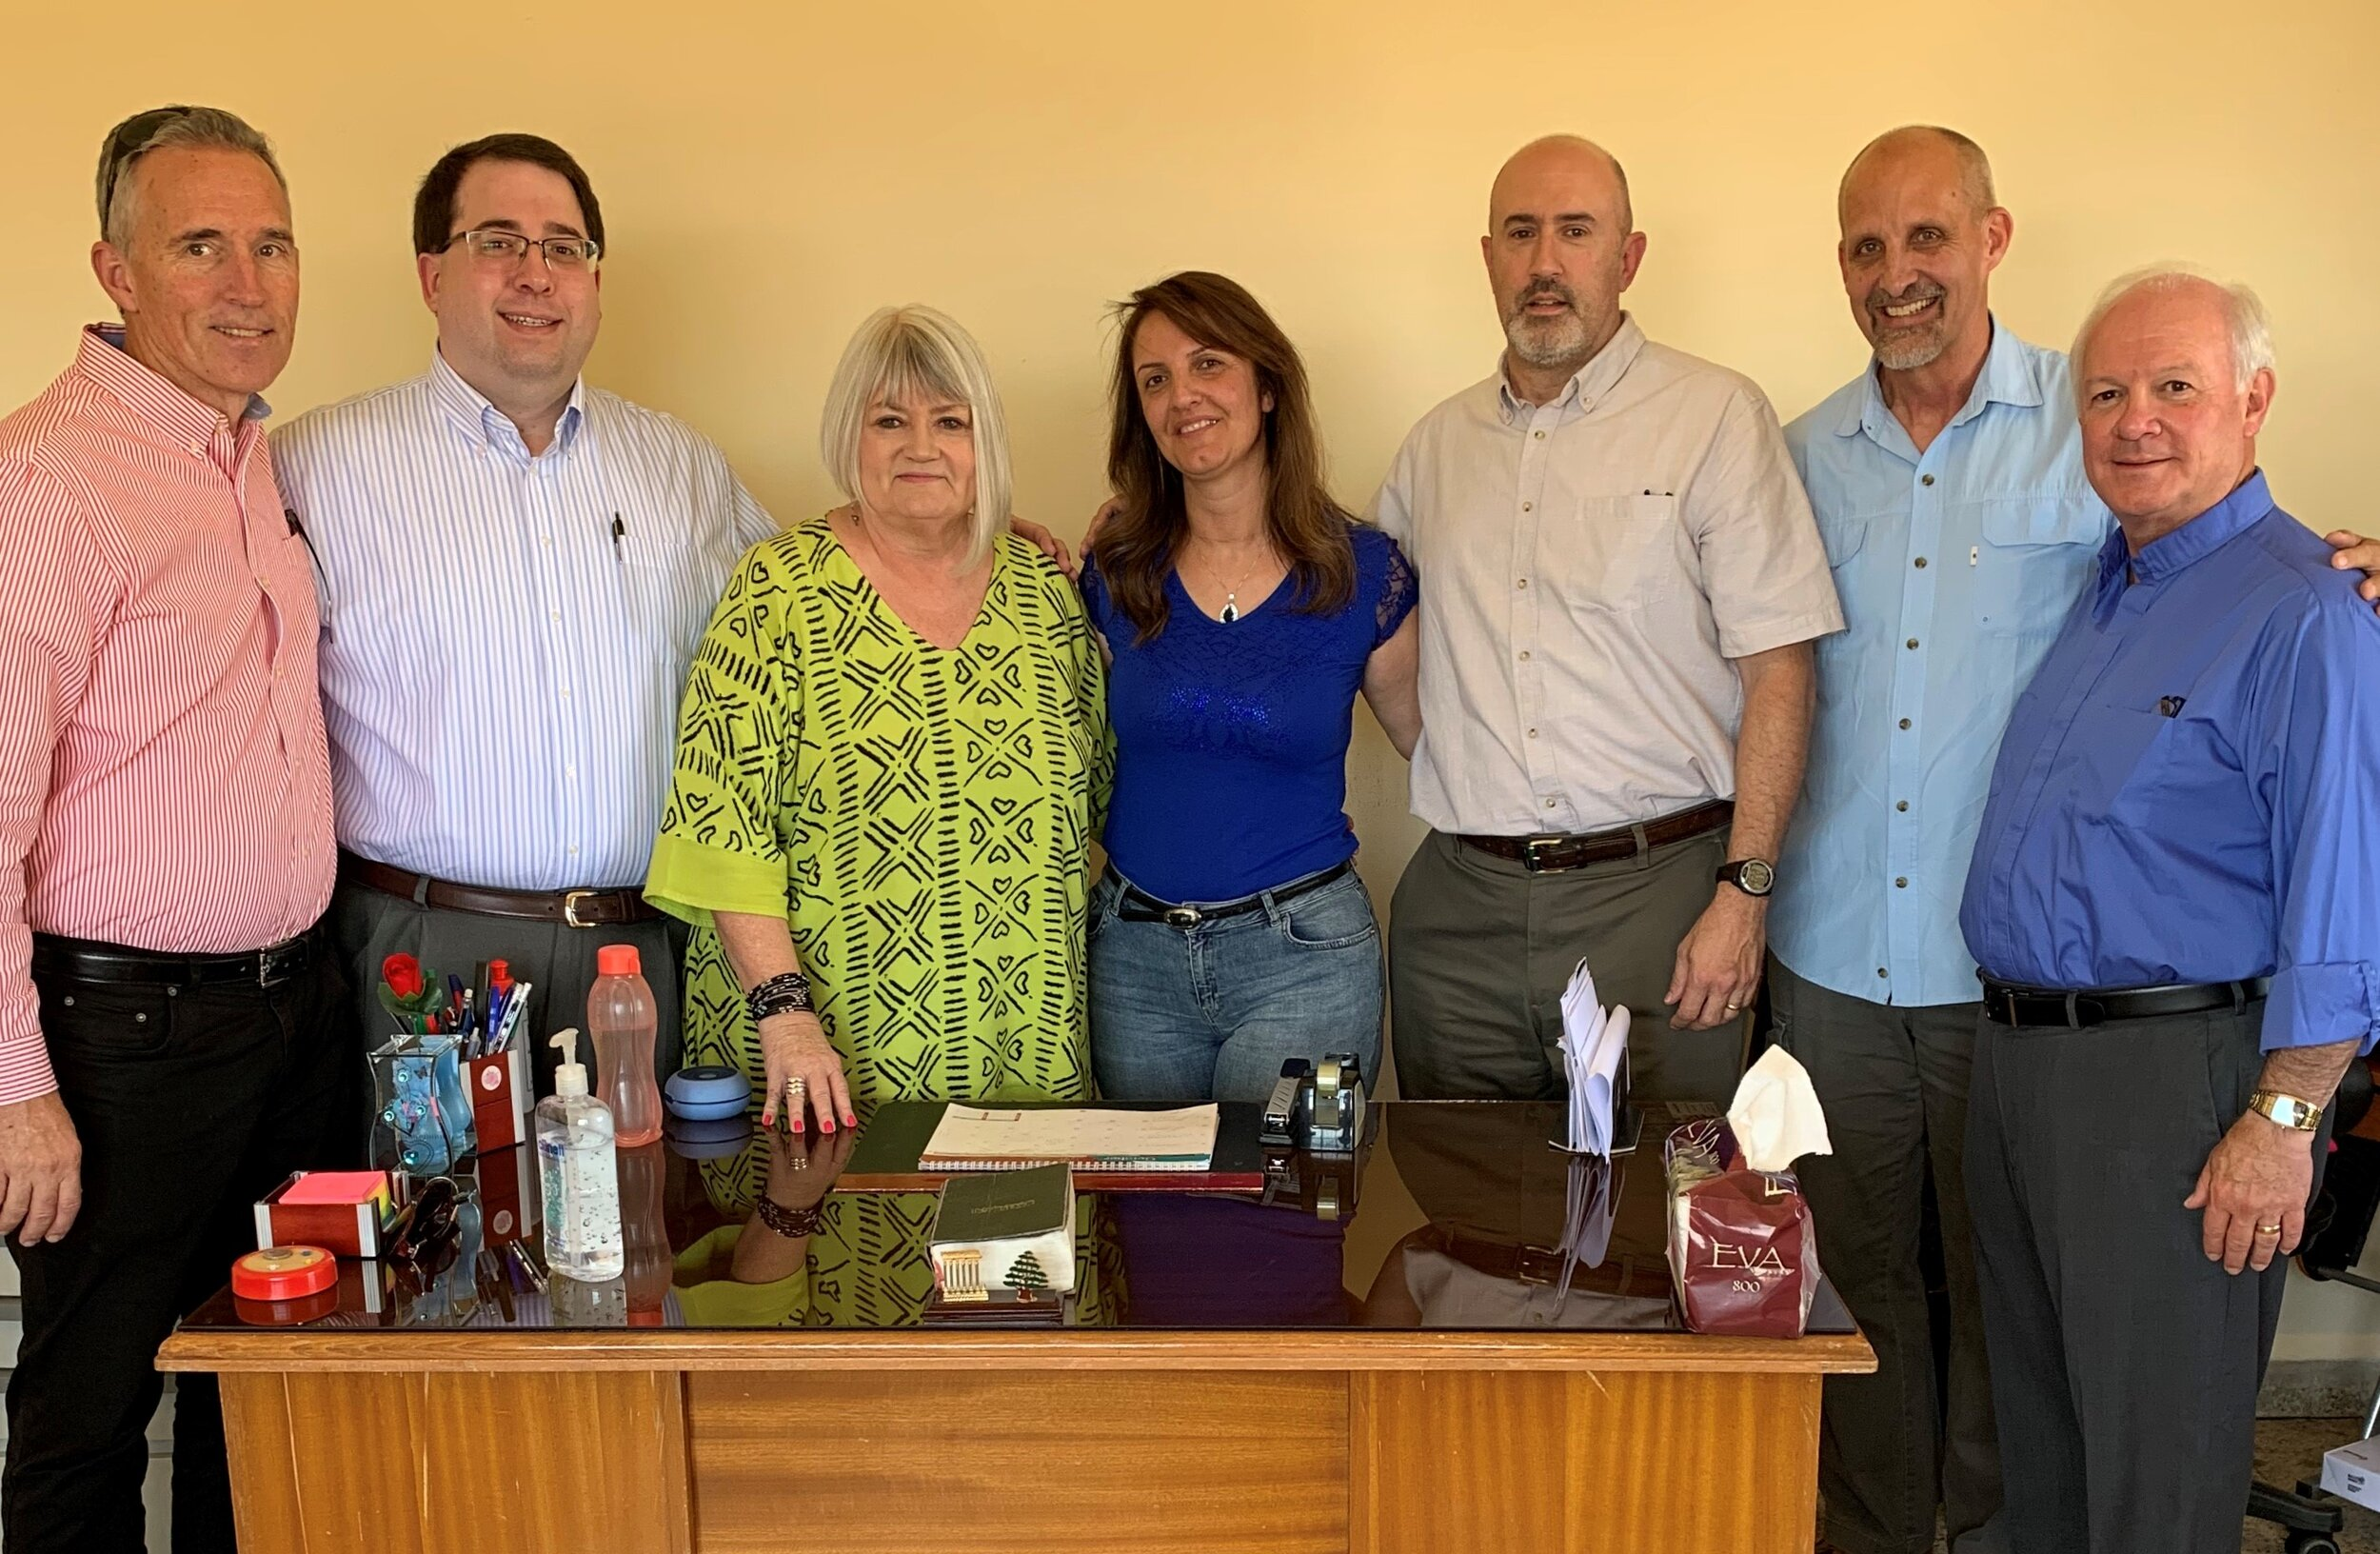 The Outreach Foundation team (Mark Mueller, Tony Lornenz, Marilyn Borst, Chris Weichman, Mike Kuhn, Jack Baca) with Ramak Abboud (center) who oversees the refugee school in Kab Elias